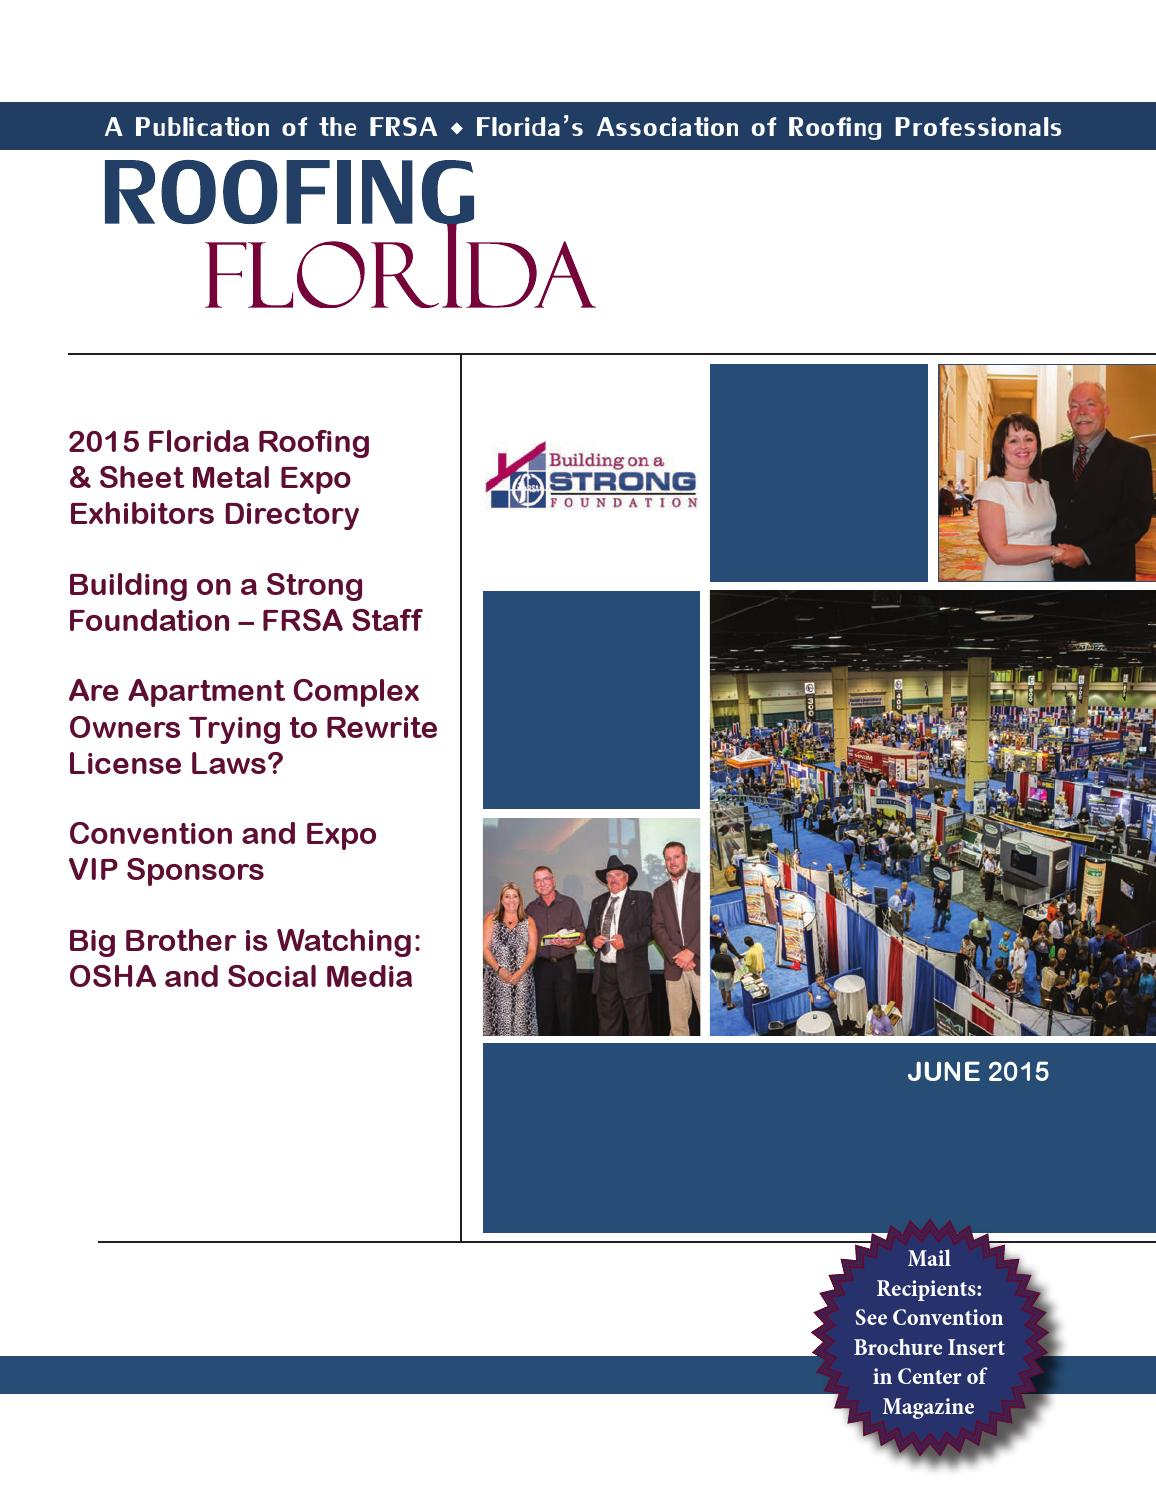 ROOFING FLORIDA - June 2015 by Florida Roofing Magazine - issuu